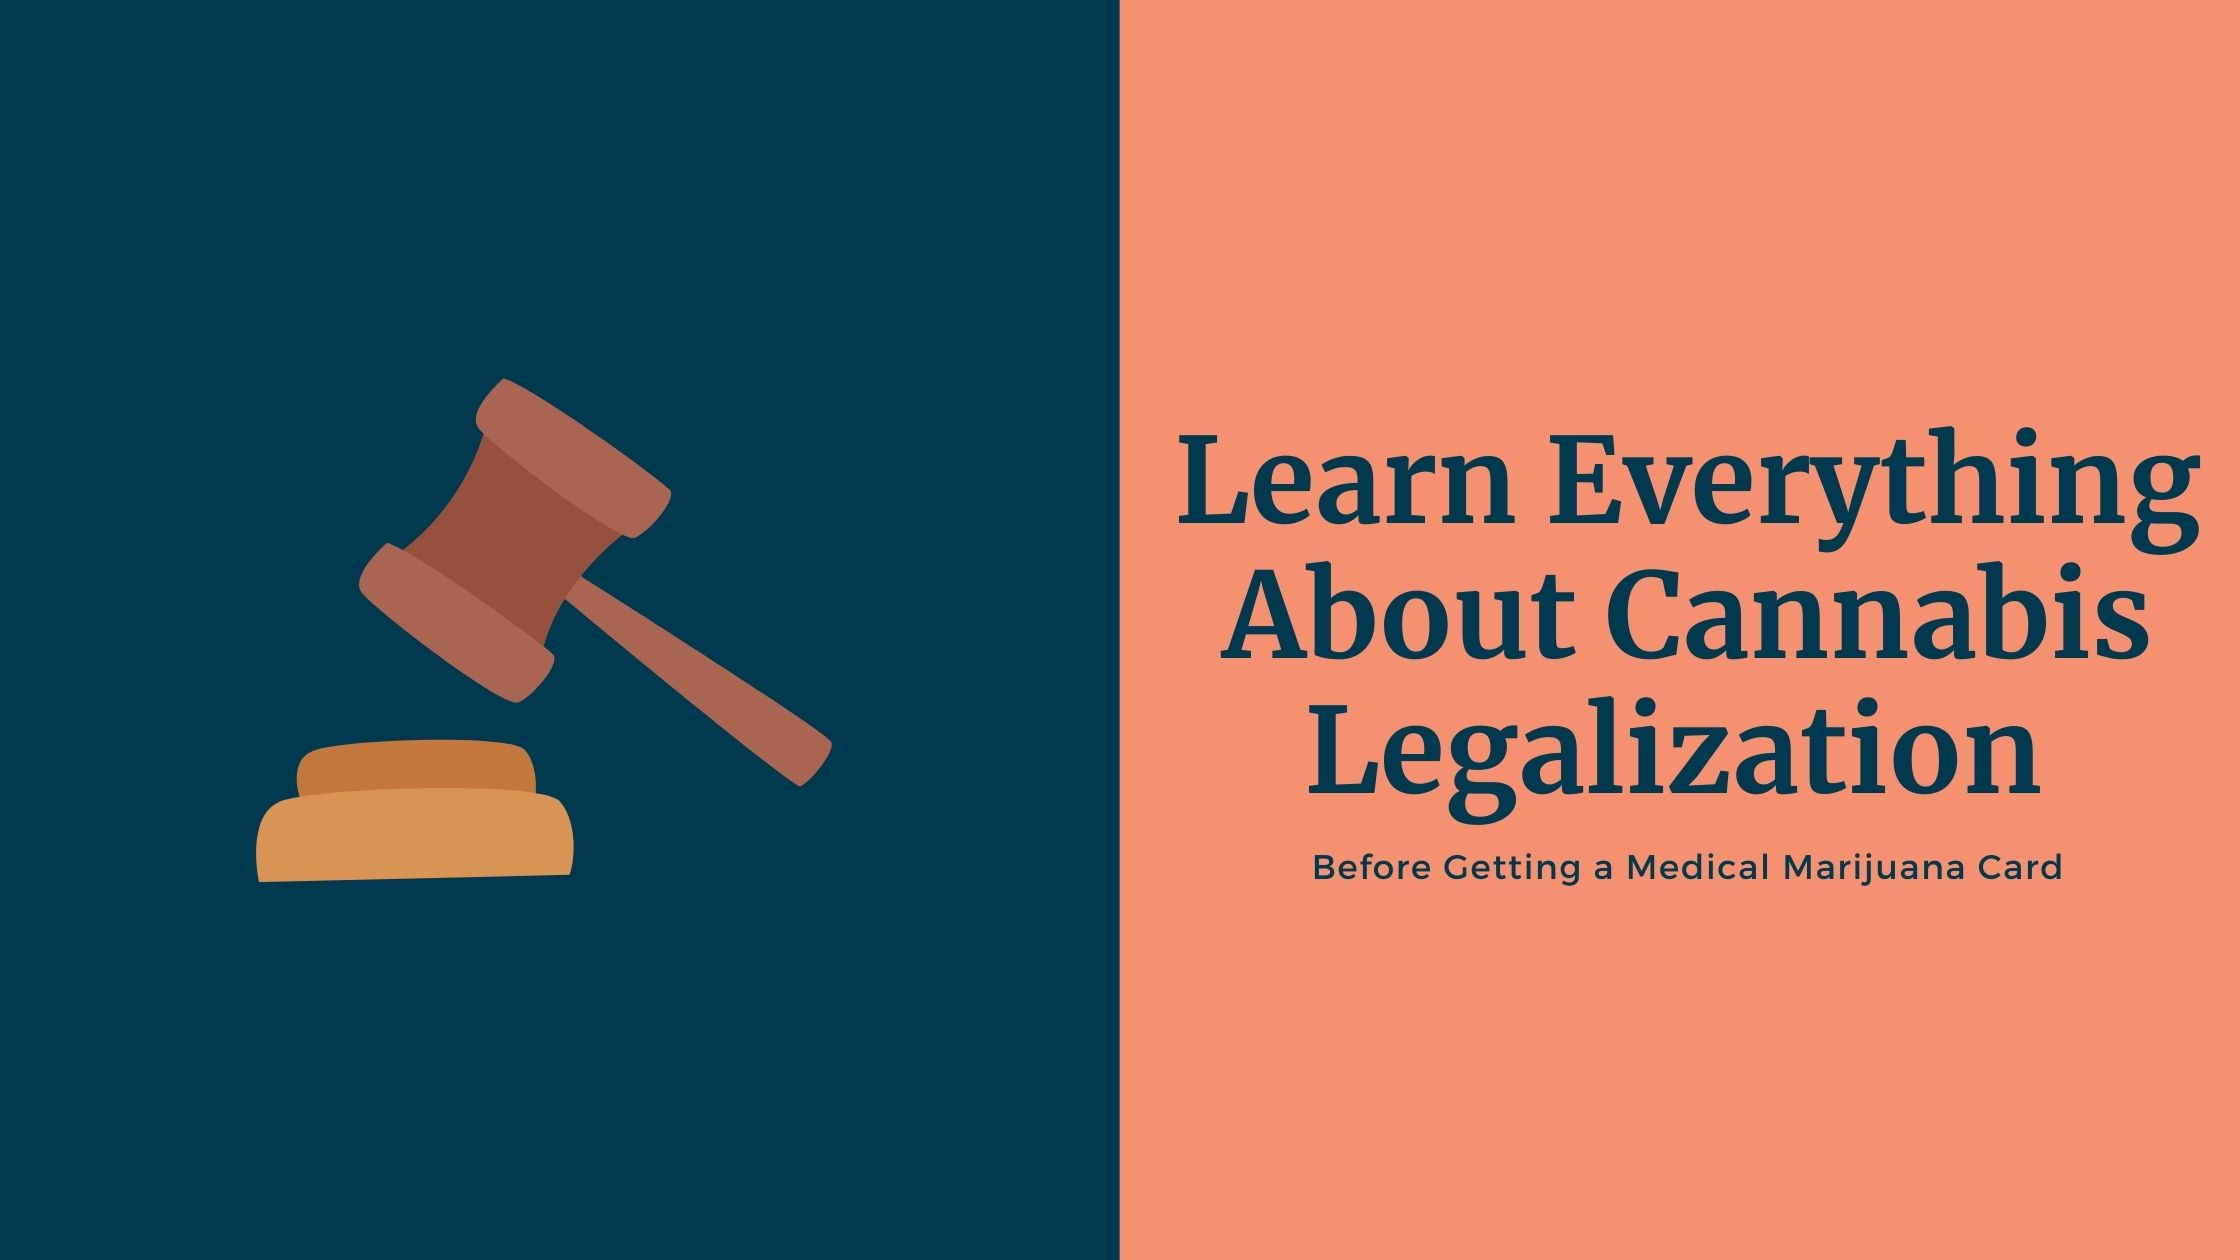 Learn-Everything-About-Cannabis-Legalization